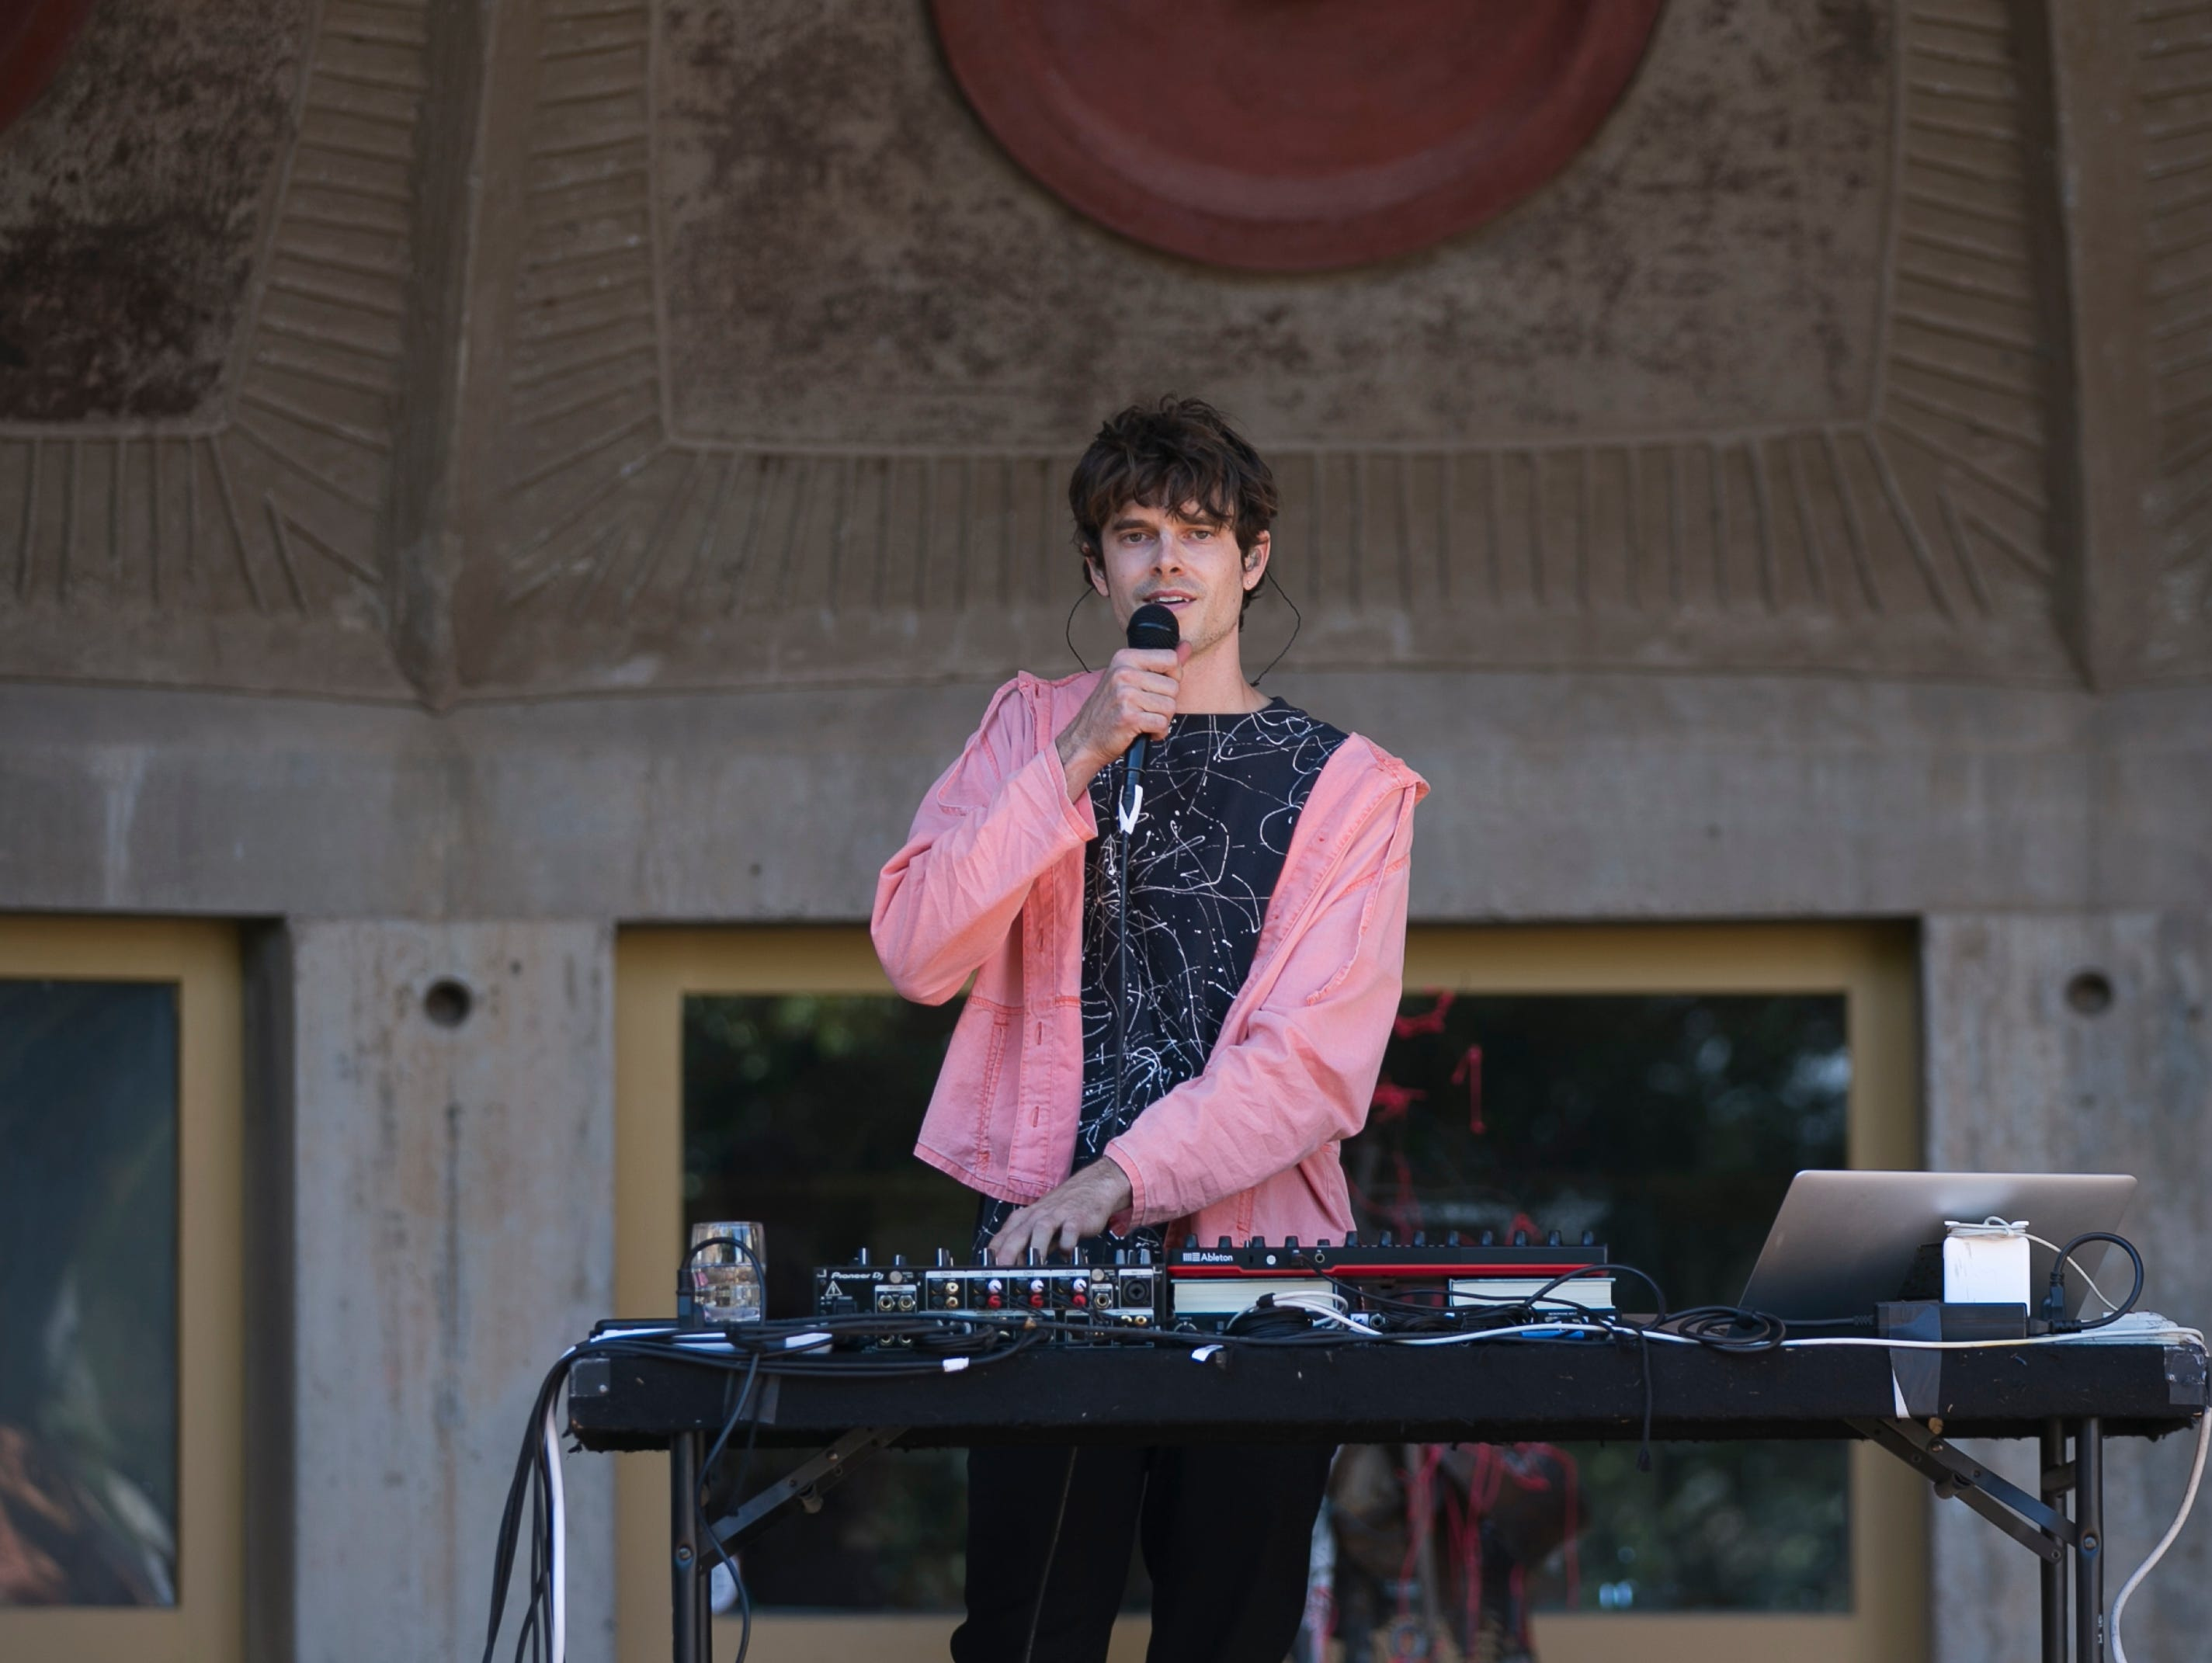 Trayer performs at the 2019 FORM Arcosanti music festival near Camp Verde, Arizona, on May 12, 2019.